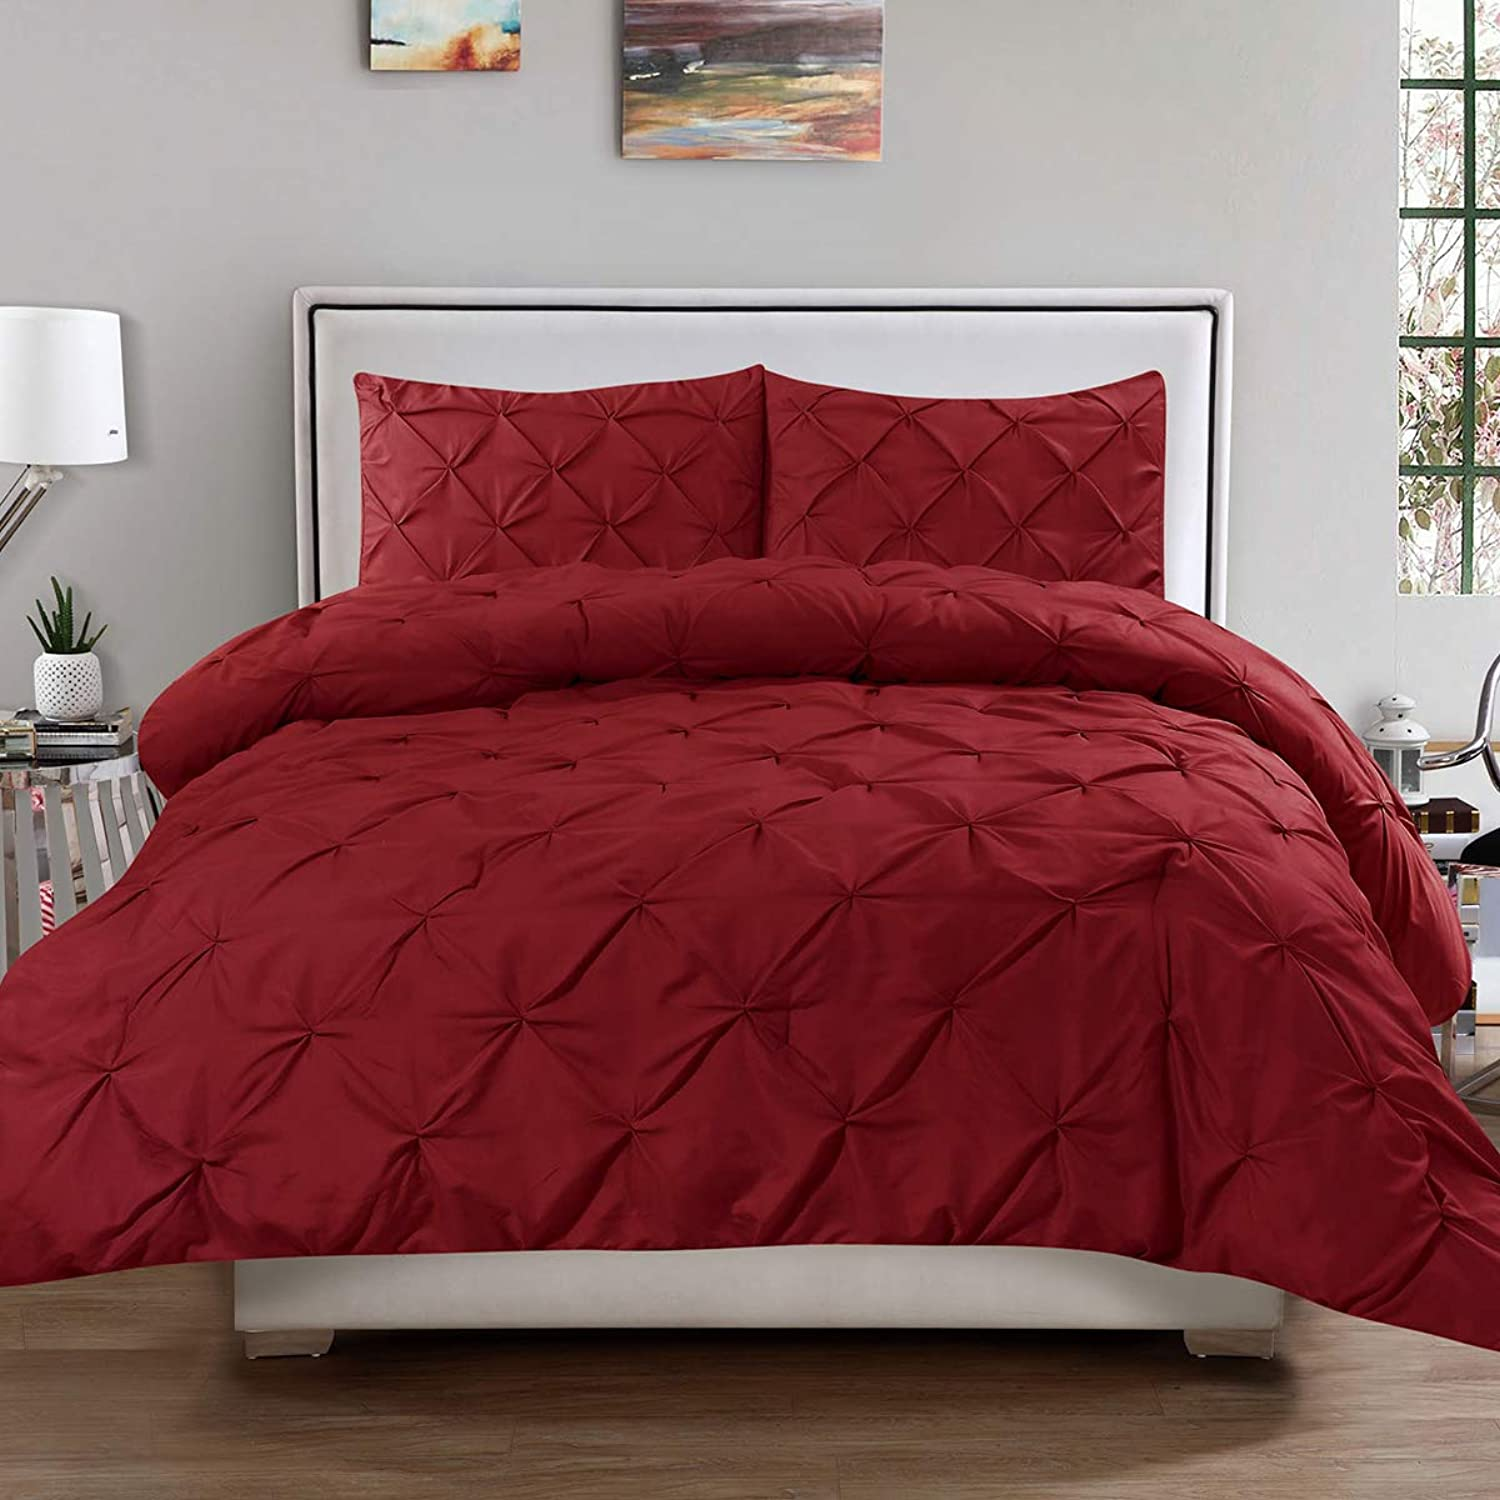 Sweet Home Collection 3 Piece Luxury Pinch Pleat Pintuck Fashion Duvet Set, Queen, Burgundy